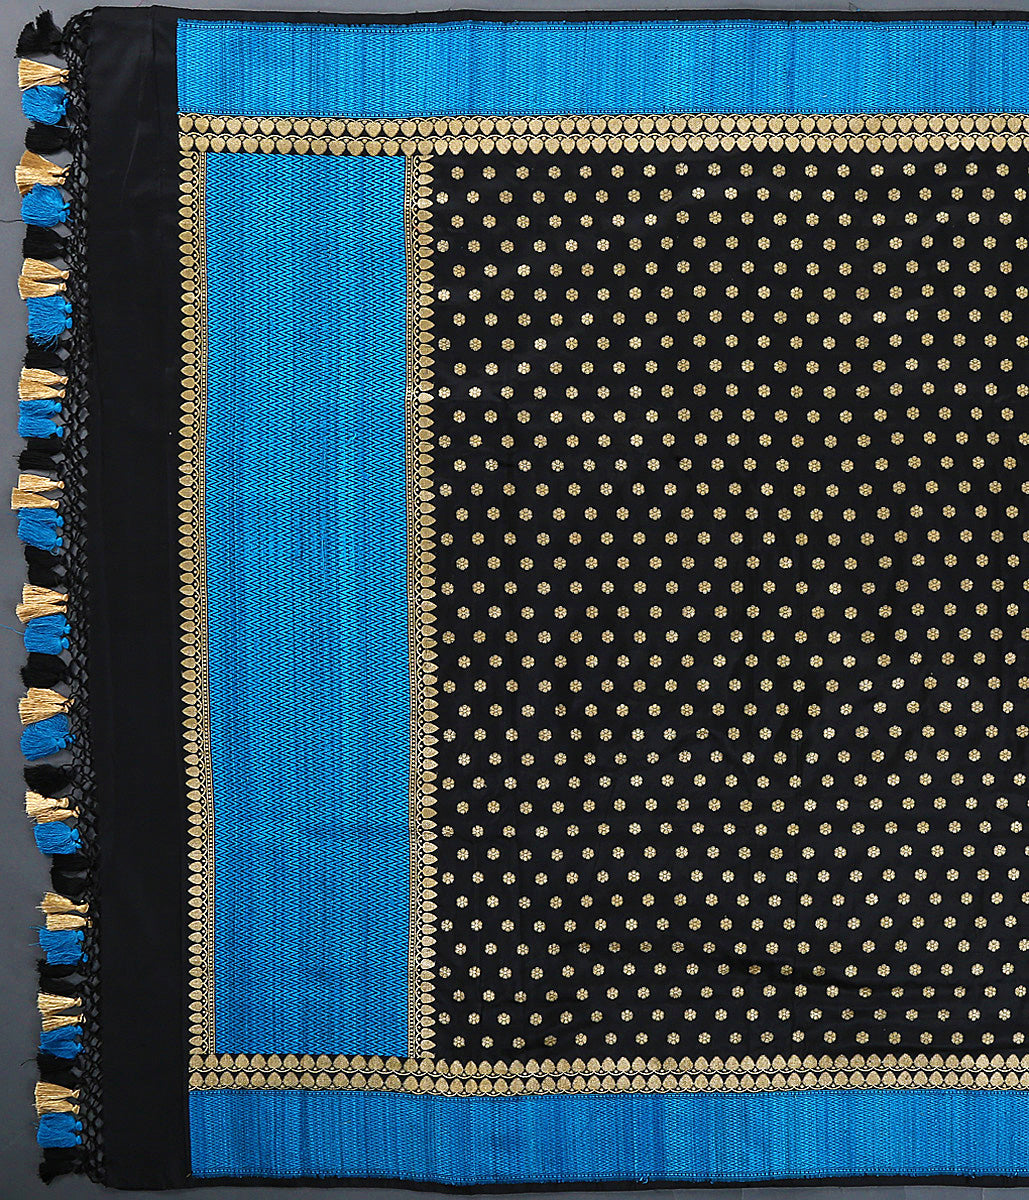 Black katan silk dupatta with woven dupion silk border in turquoise blue